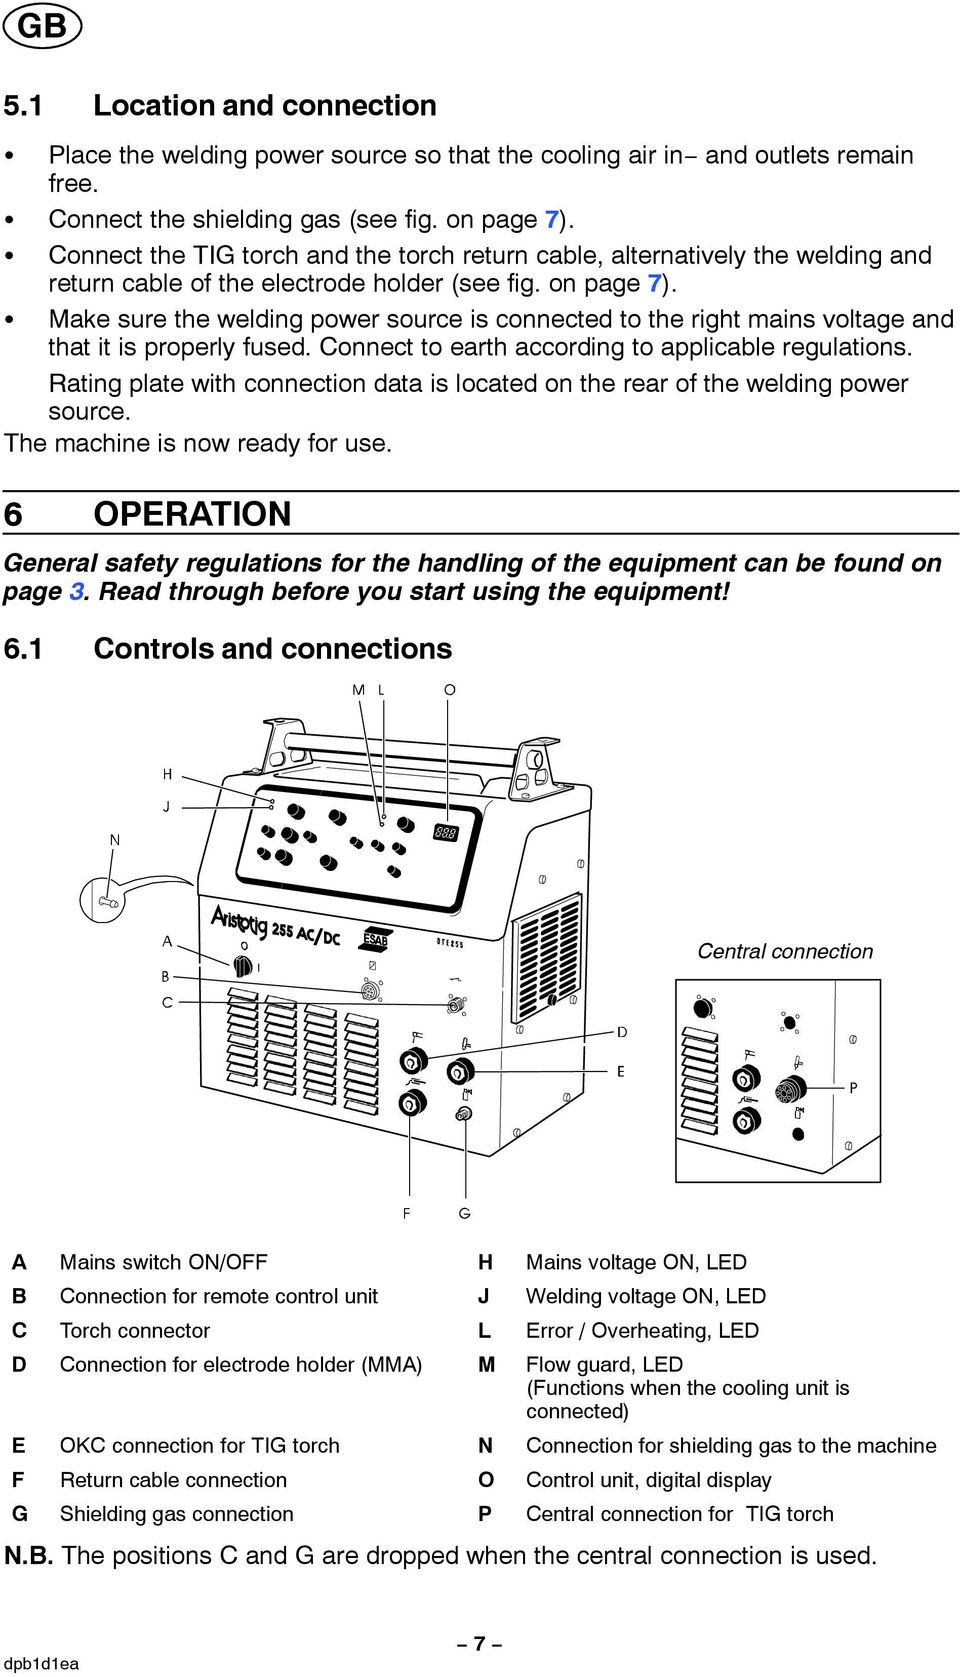 Aristotig 255 Ac Dc Dte Instruction Manual Pdf Welding Machine Diagram Make Sure The Power Source Is Connected To Right Mains Voltage And That It